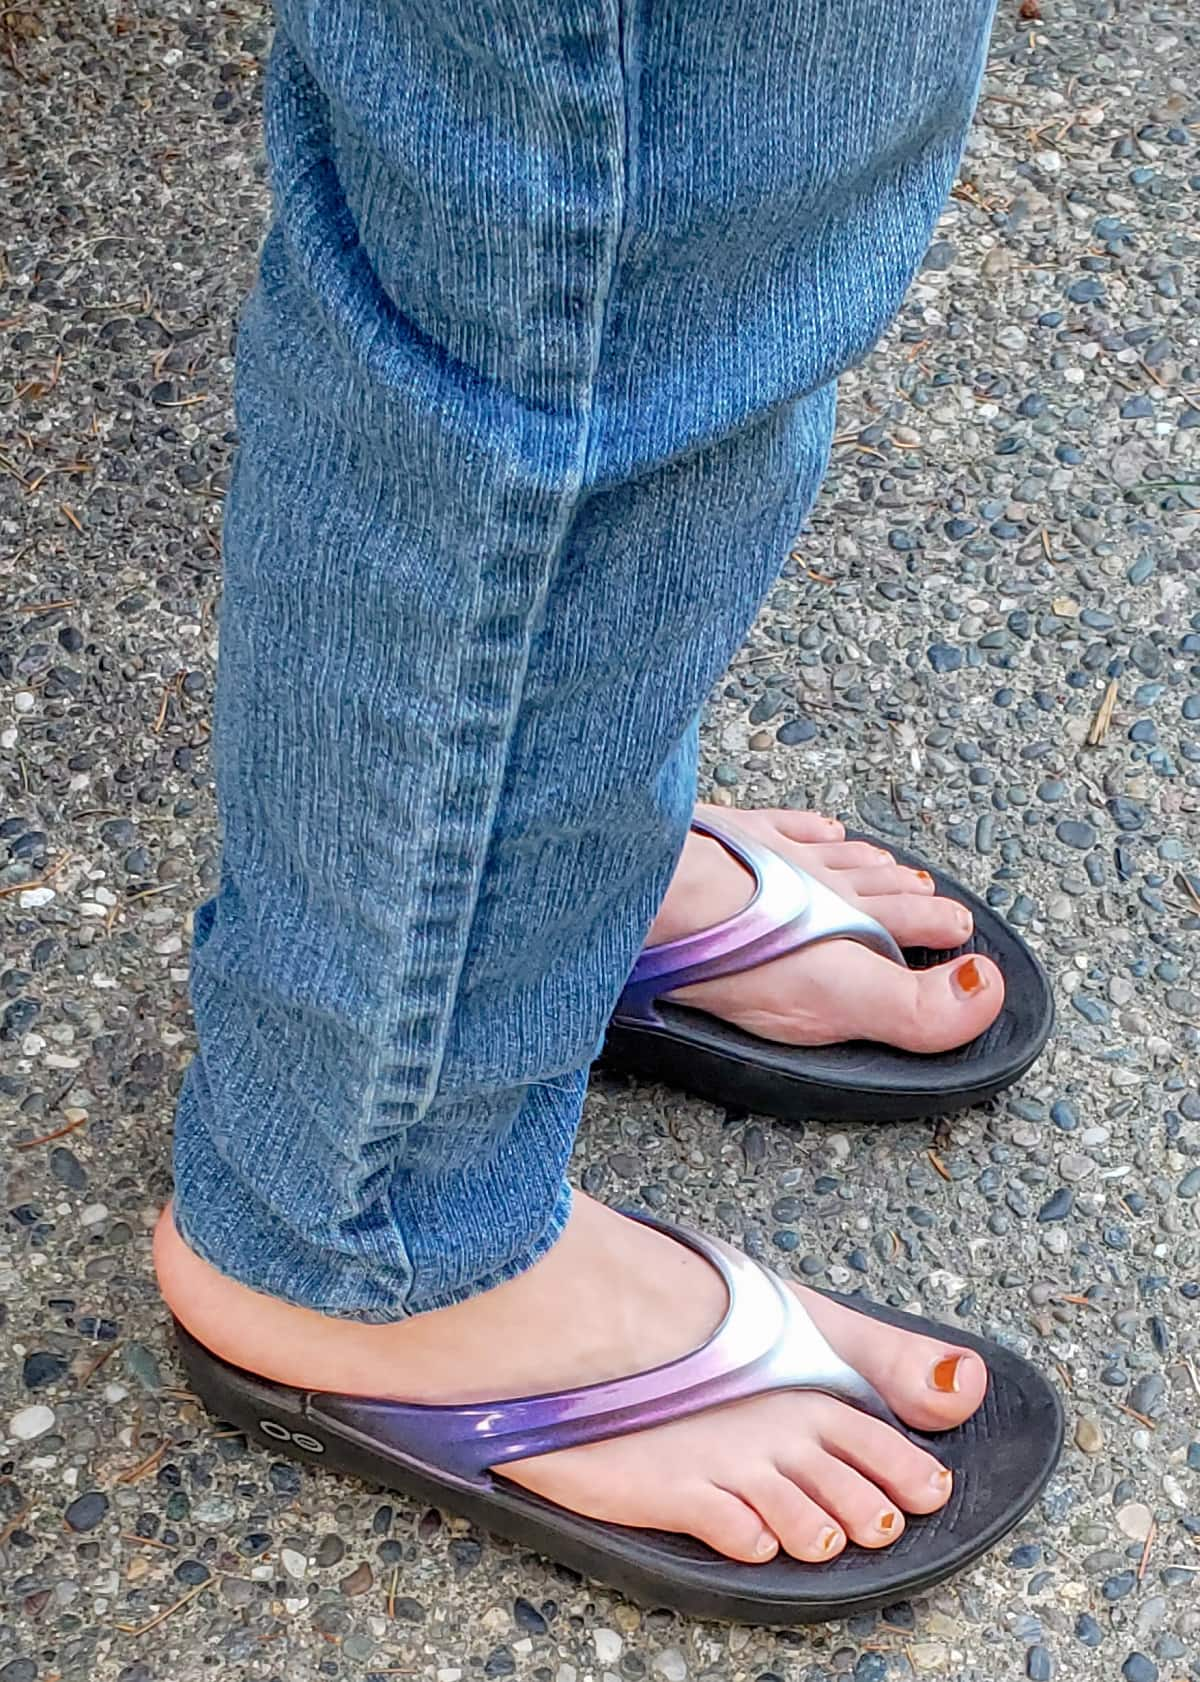 oofos shoes and oofos sandals